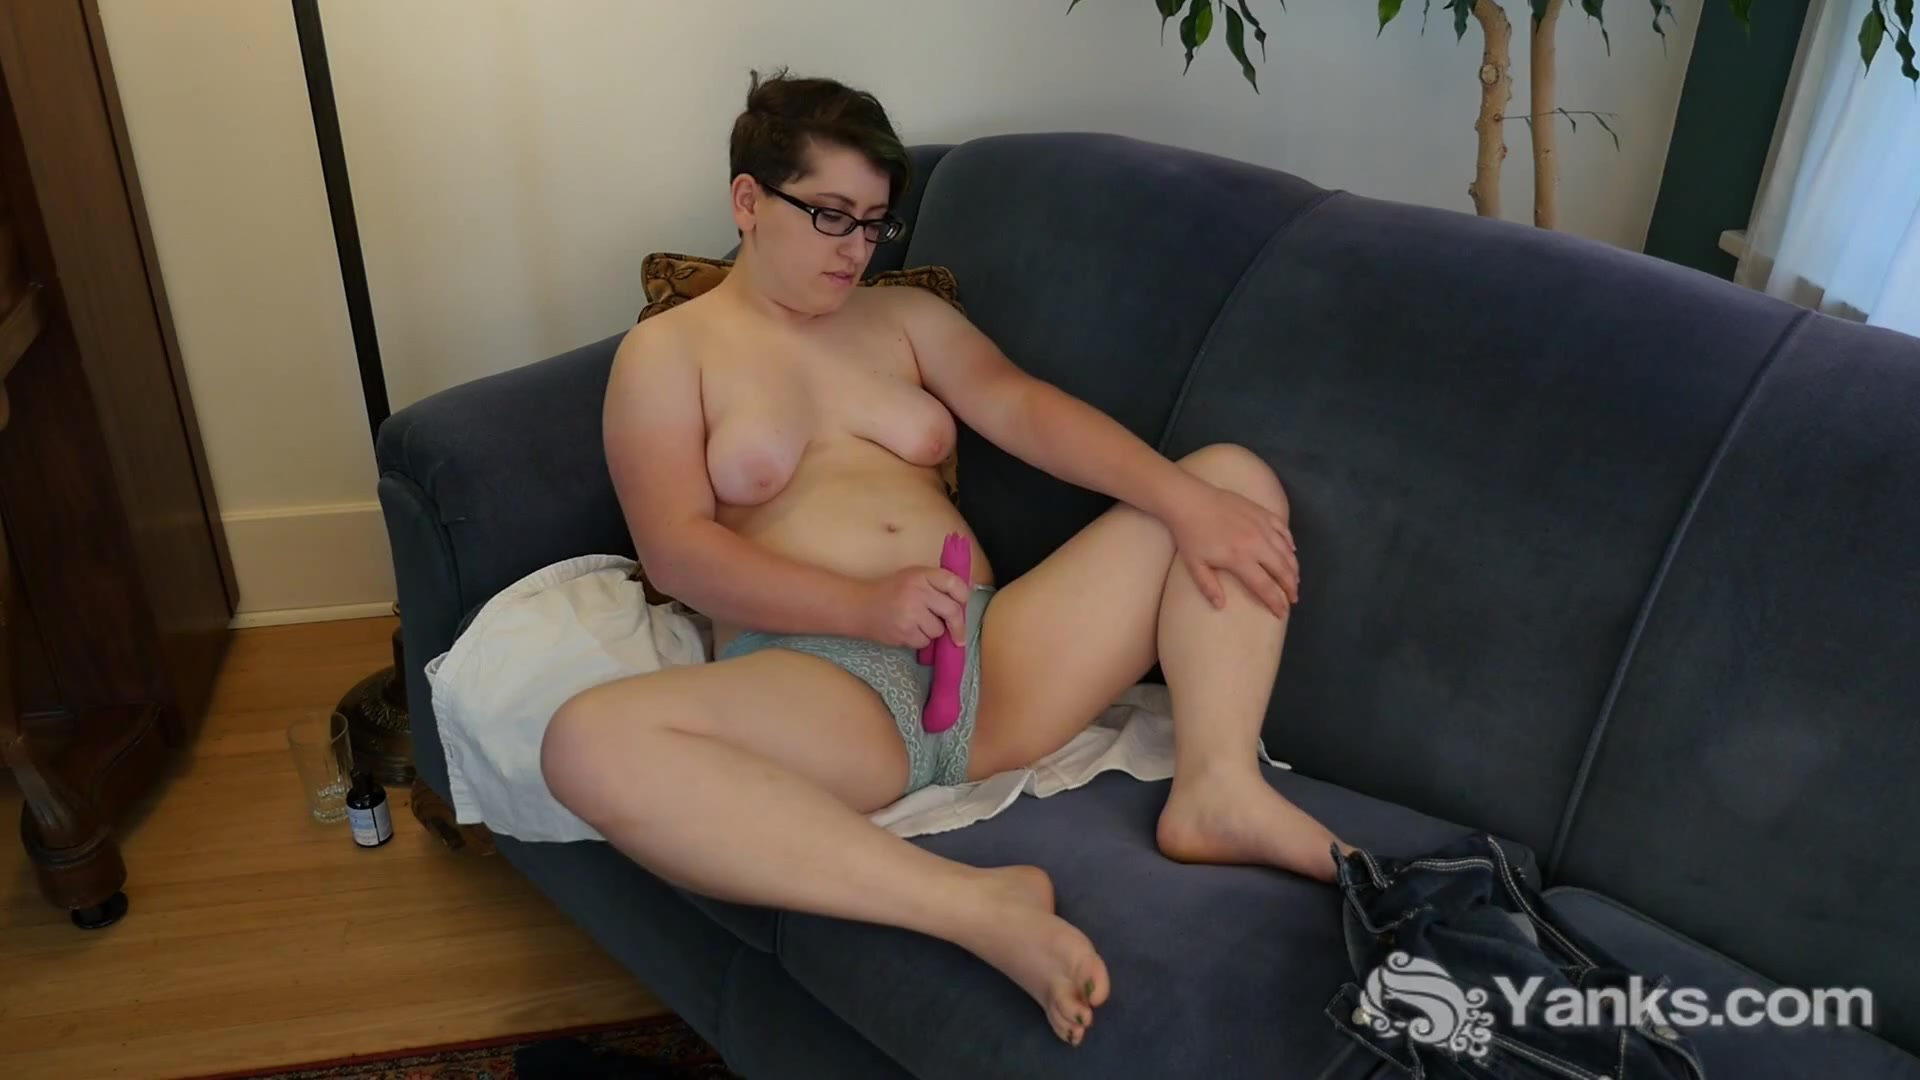 Shaved pussy/haired toying her short pussy